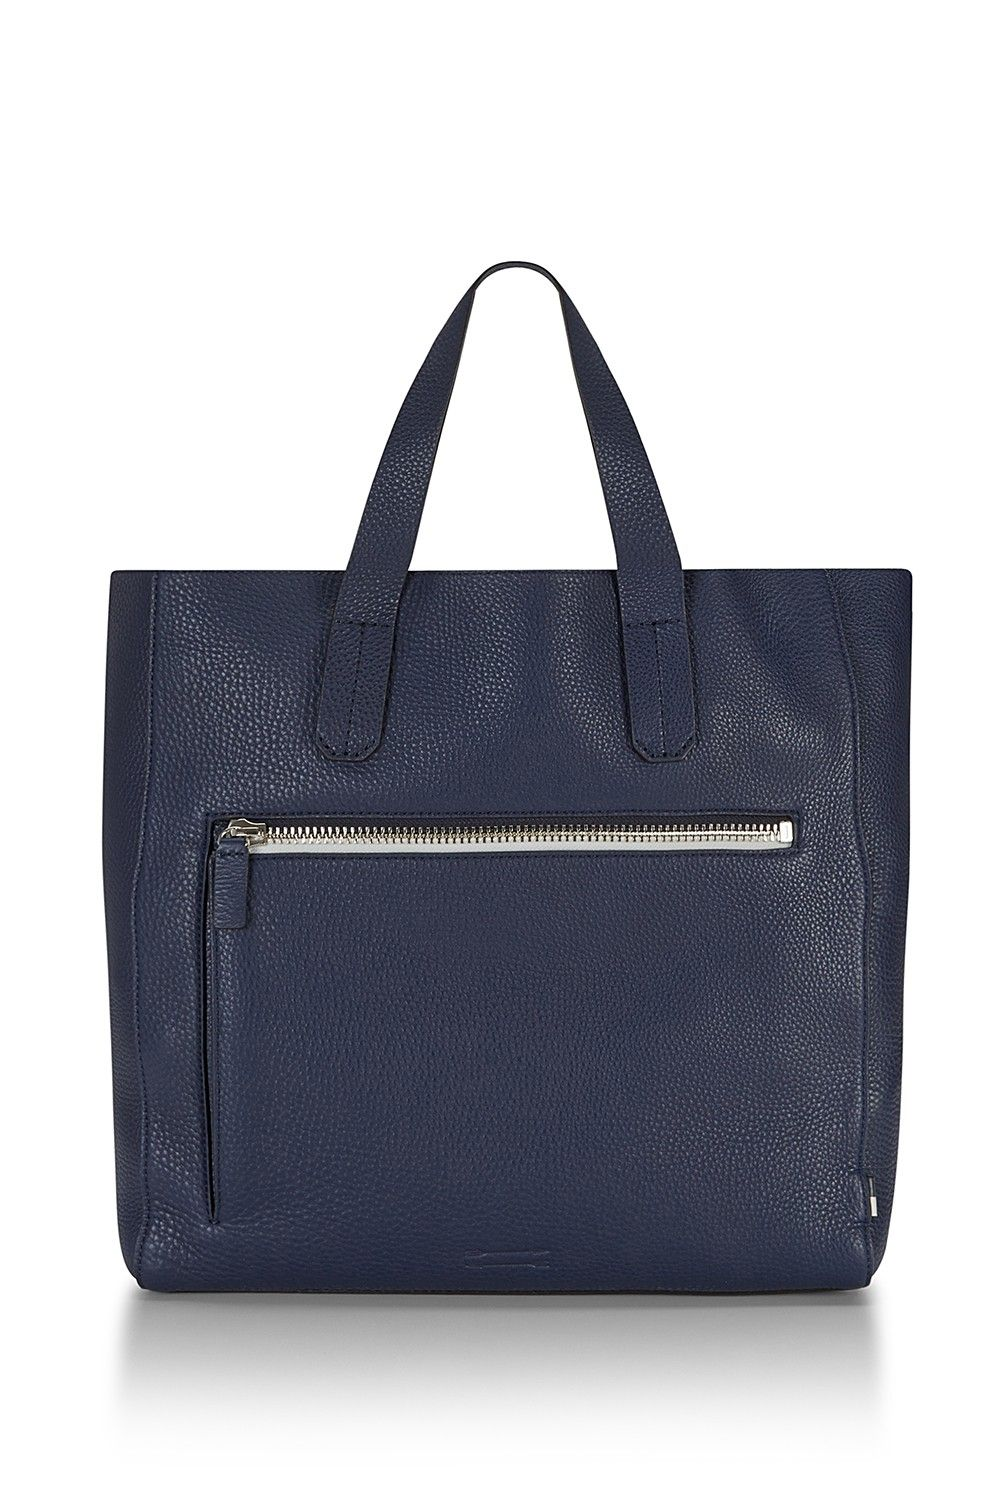 82125a2935b3 Felisi Leather-Trimmed Duffel at Barneys New York